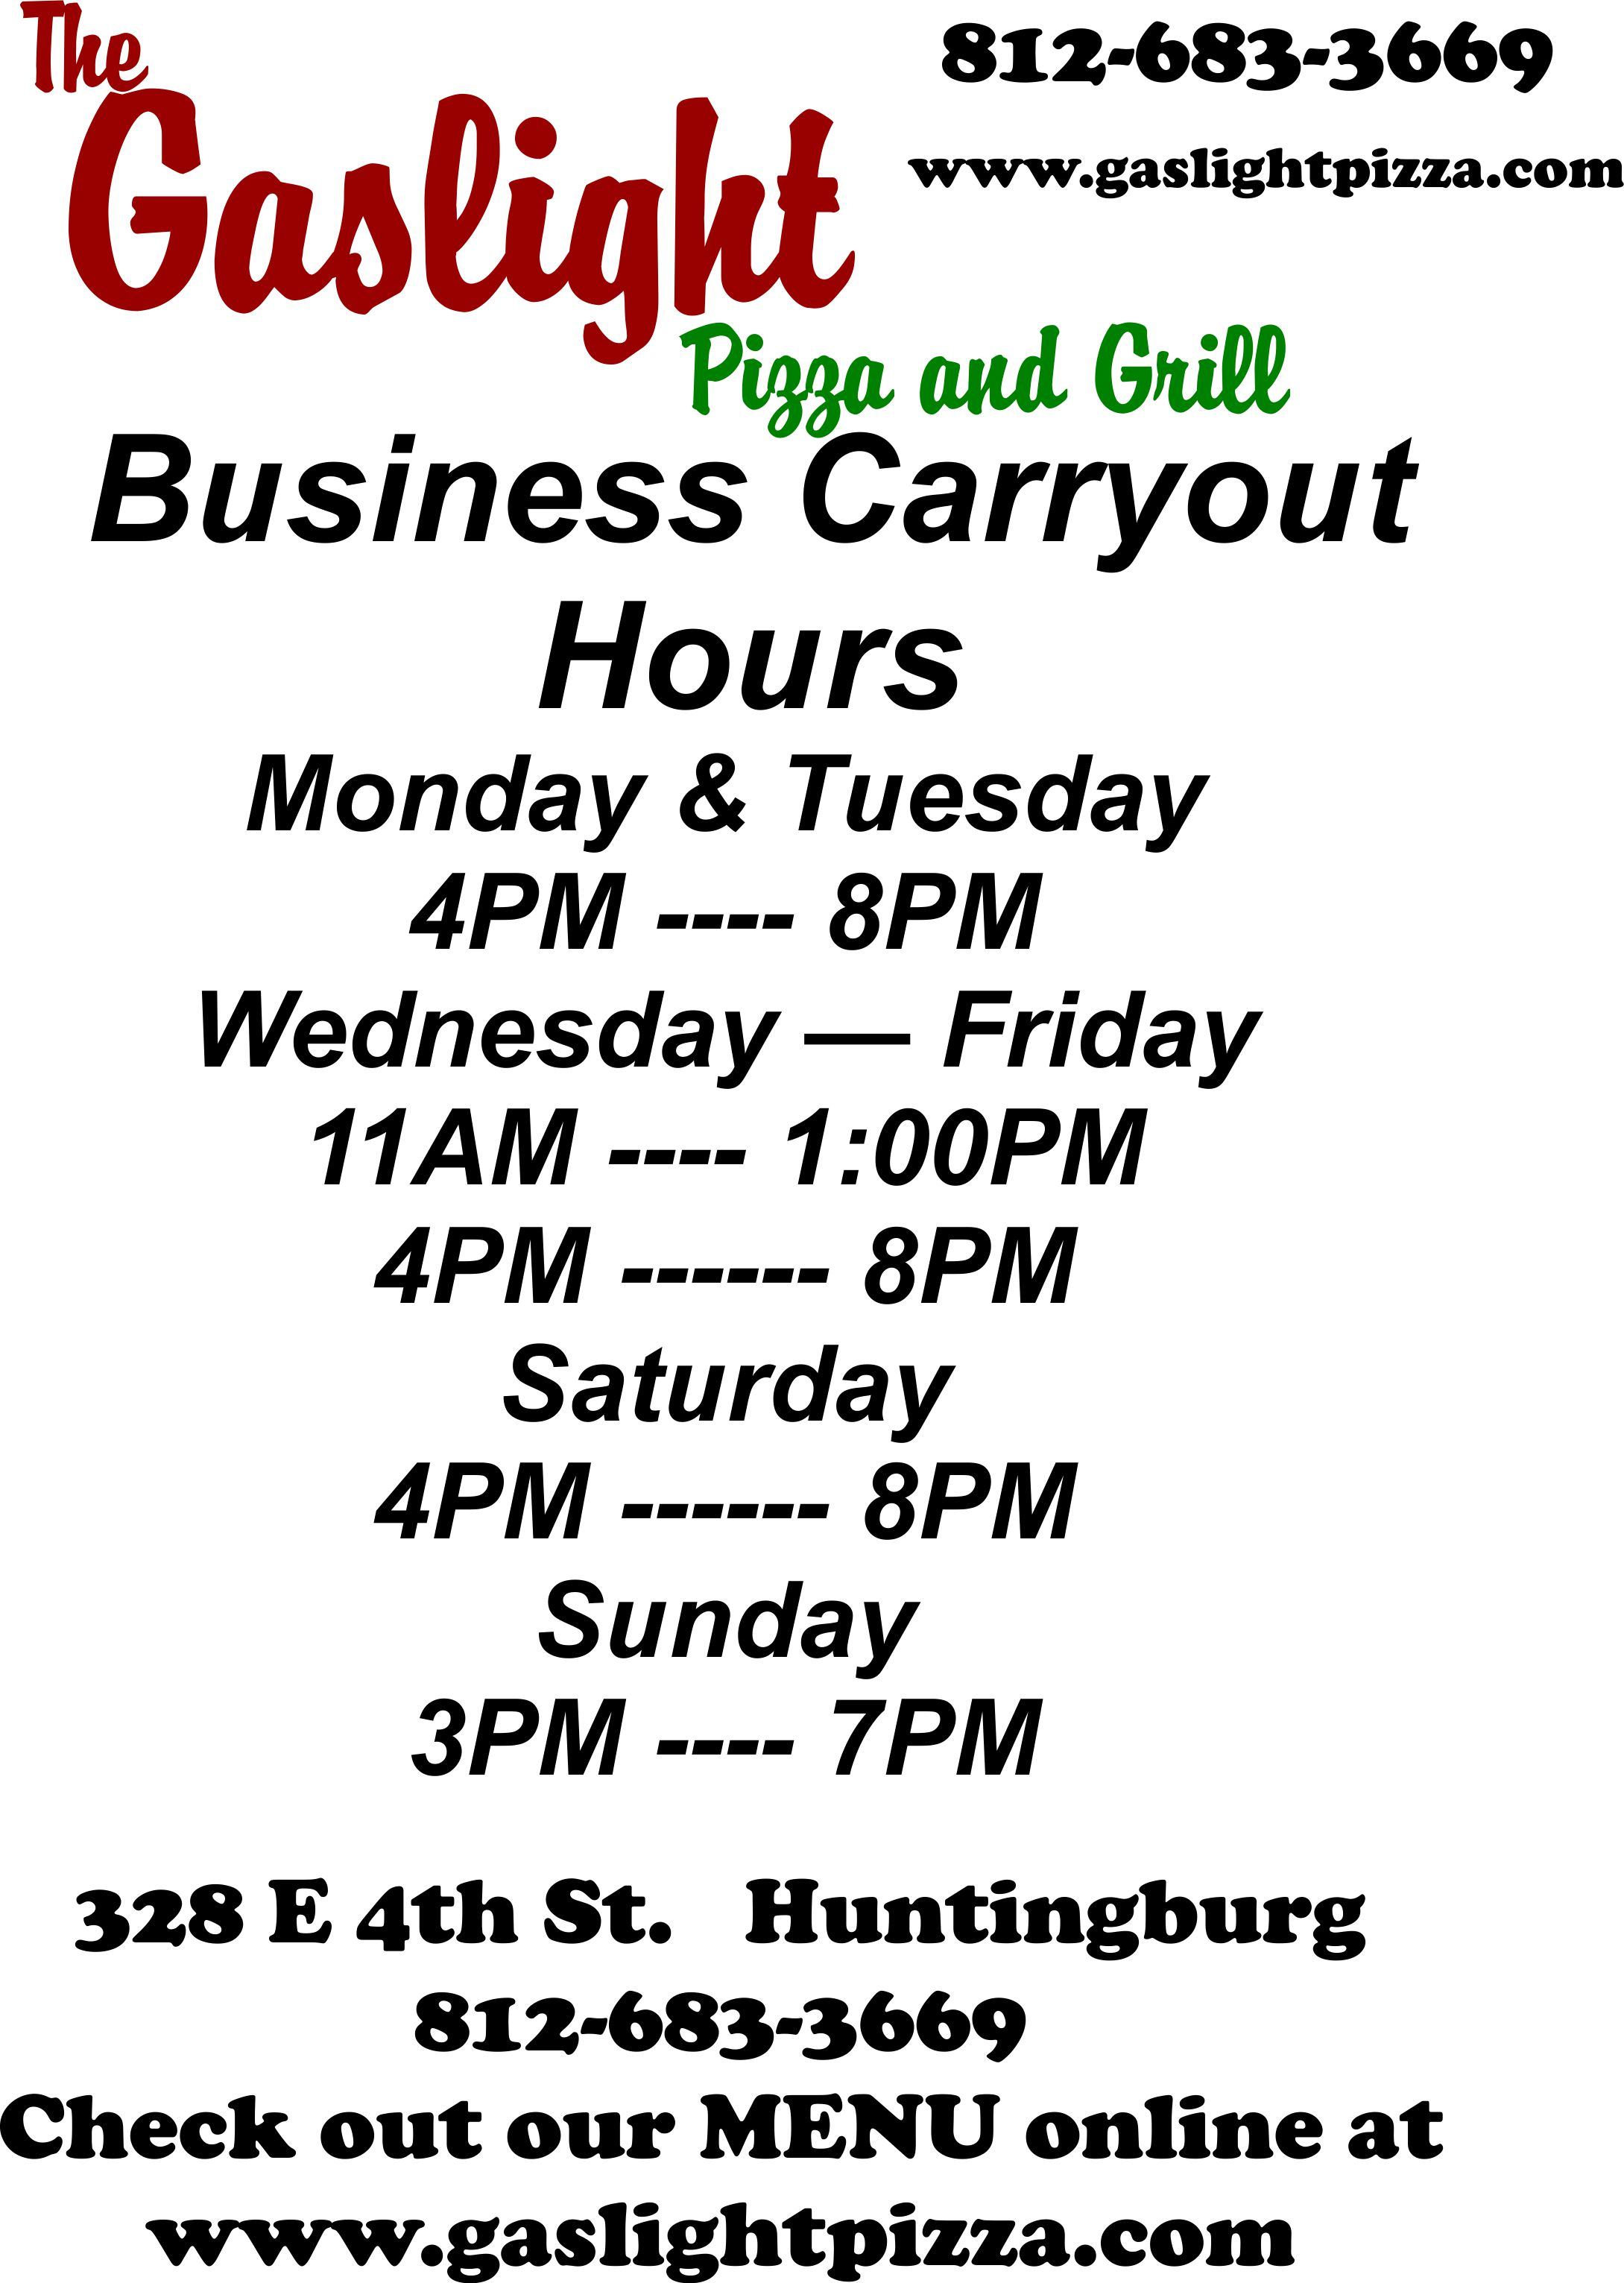 Business Carryout Hours Monday and Tuesday: 4 pm to 8 pm, Wednesday through Friday 11 am to 1 pm and 4 pm to 8 pm, Saturday 4 pm to 8 pm, and sunday from 3 pm to 7 pm